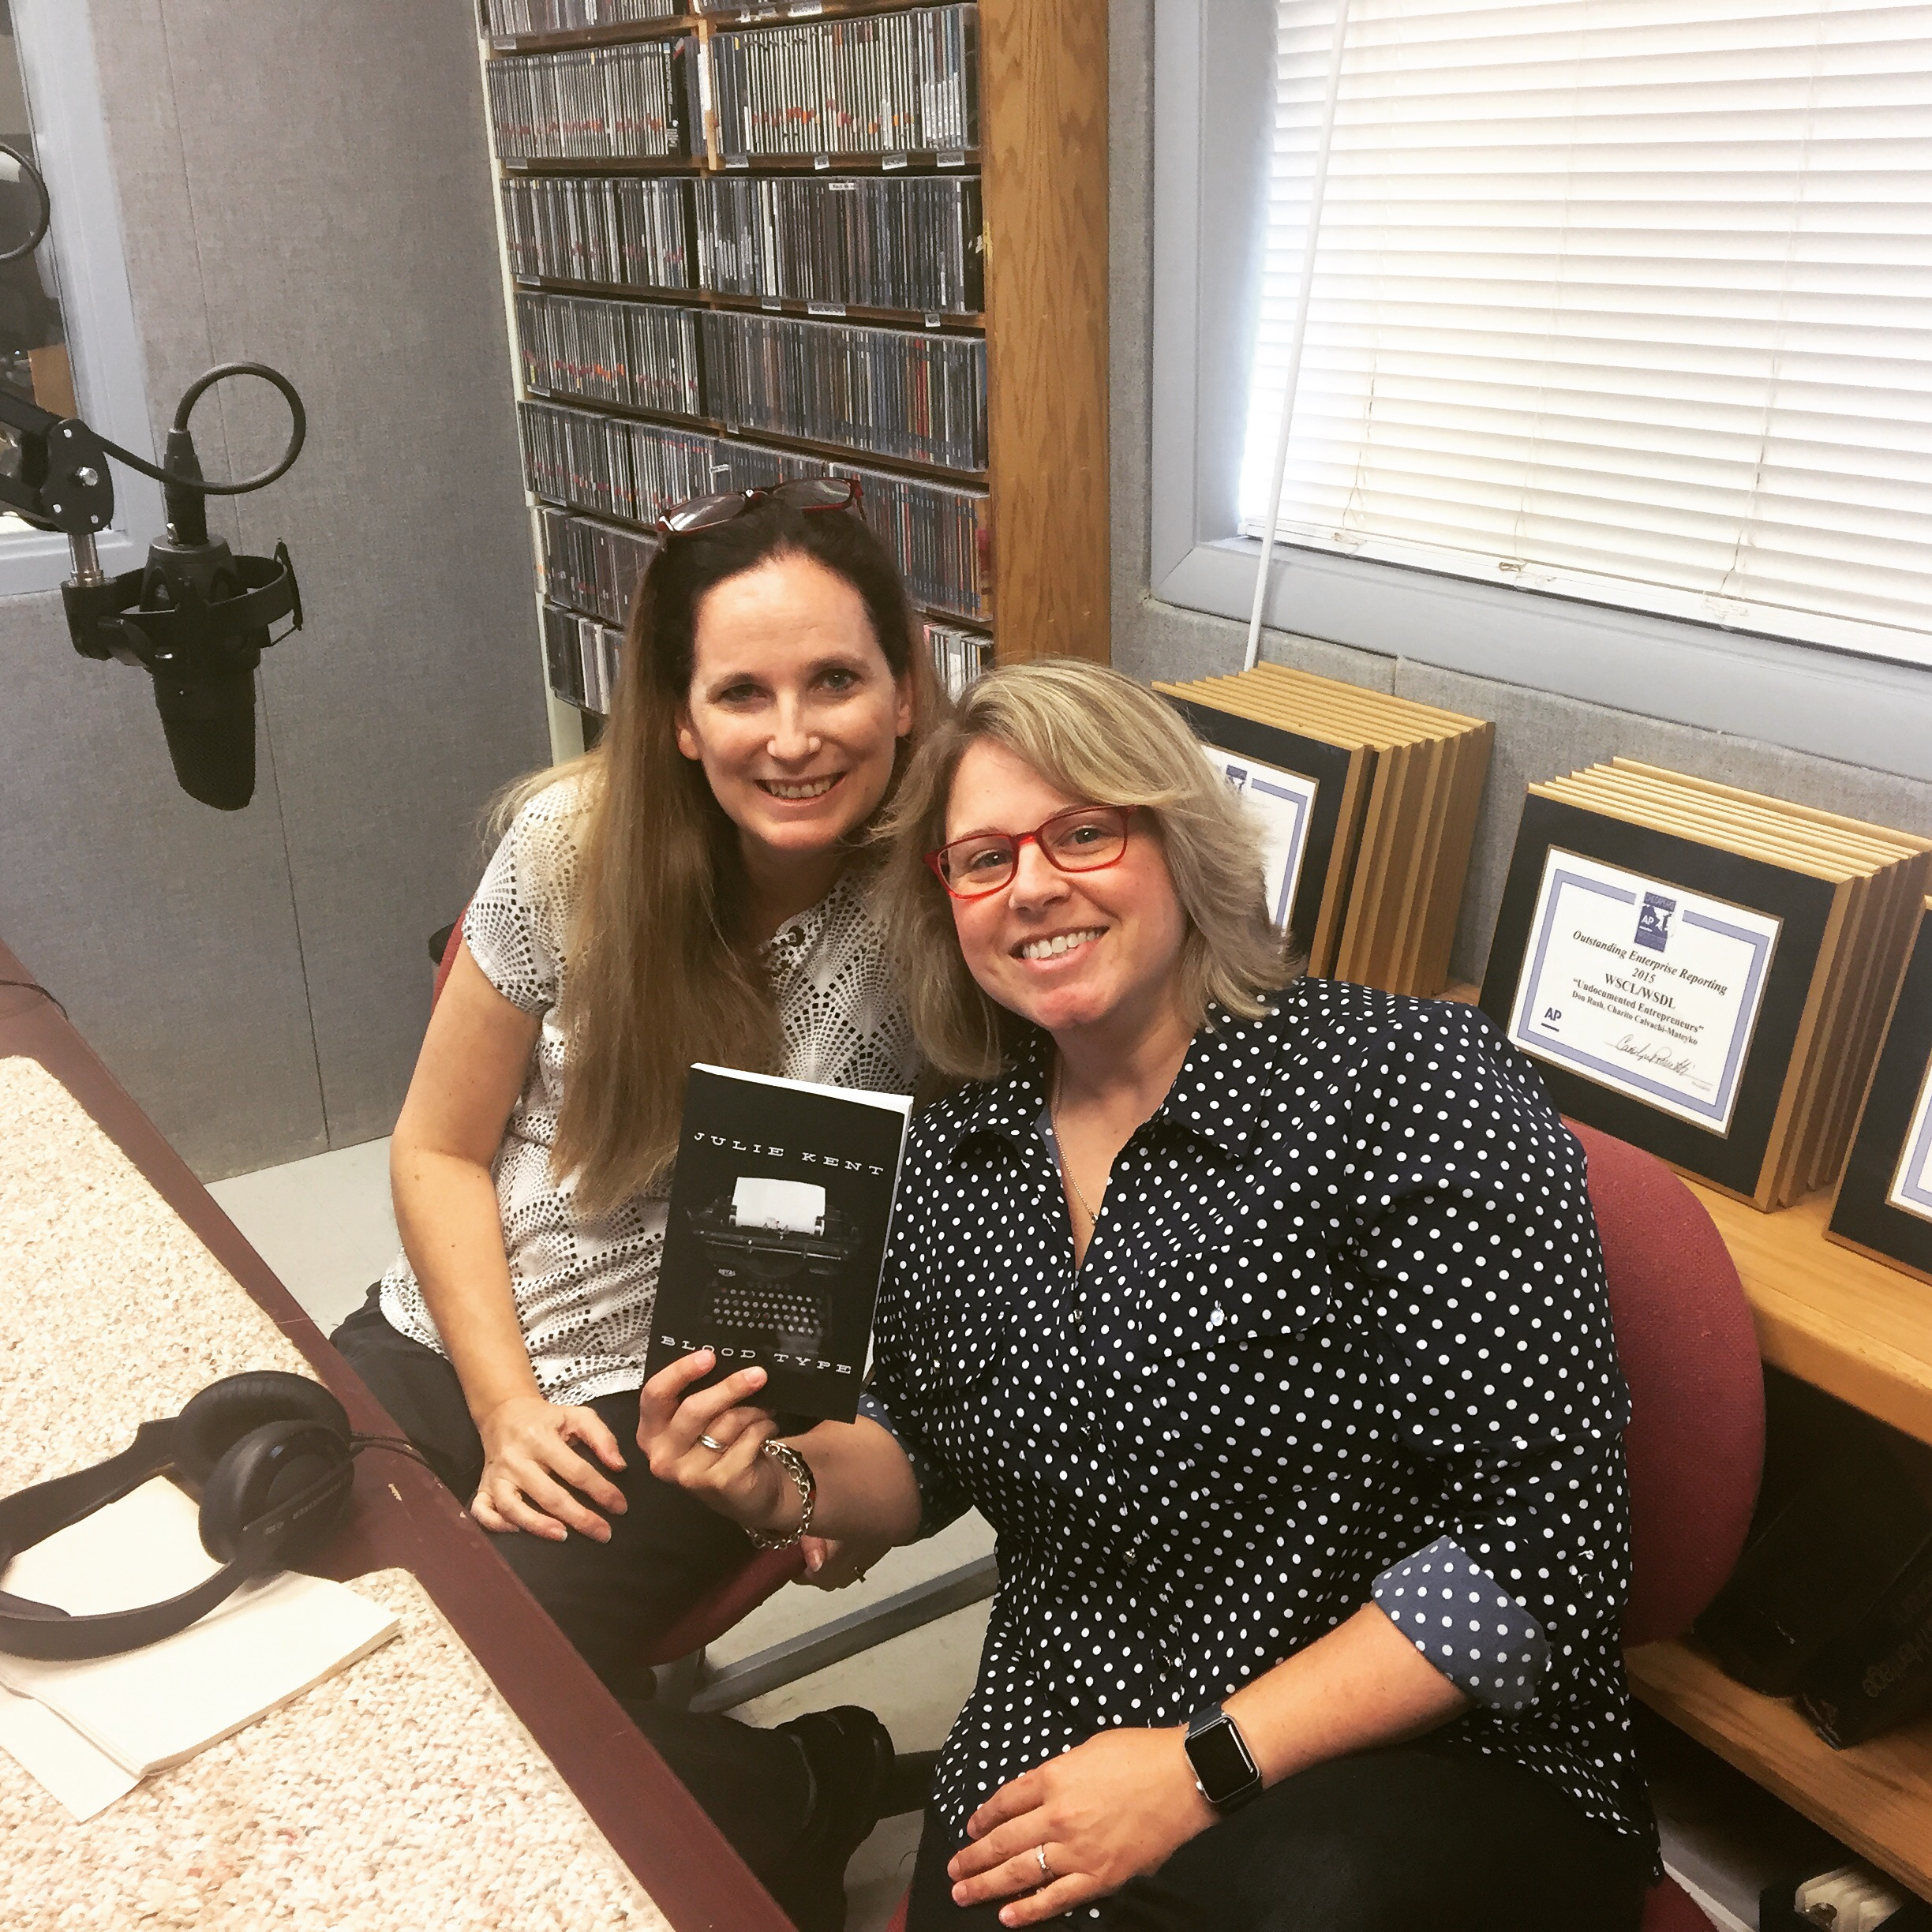 Julie Kent and Stephanie - post podcast which was recorded at Delmarva Public Radio!